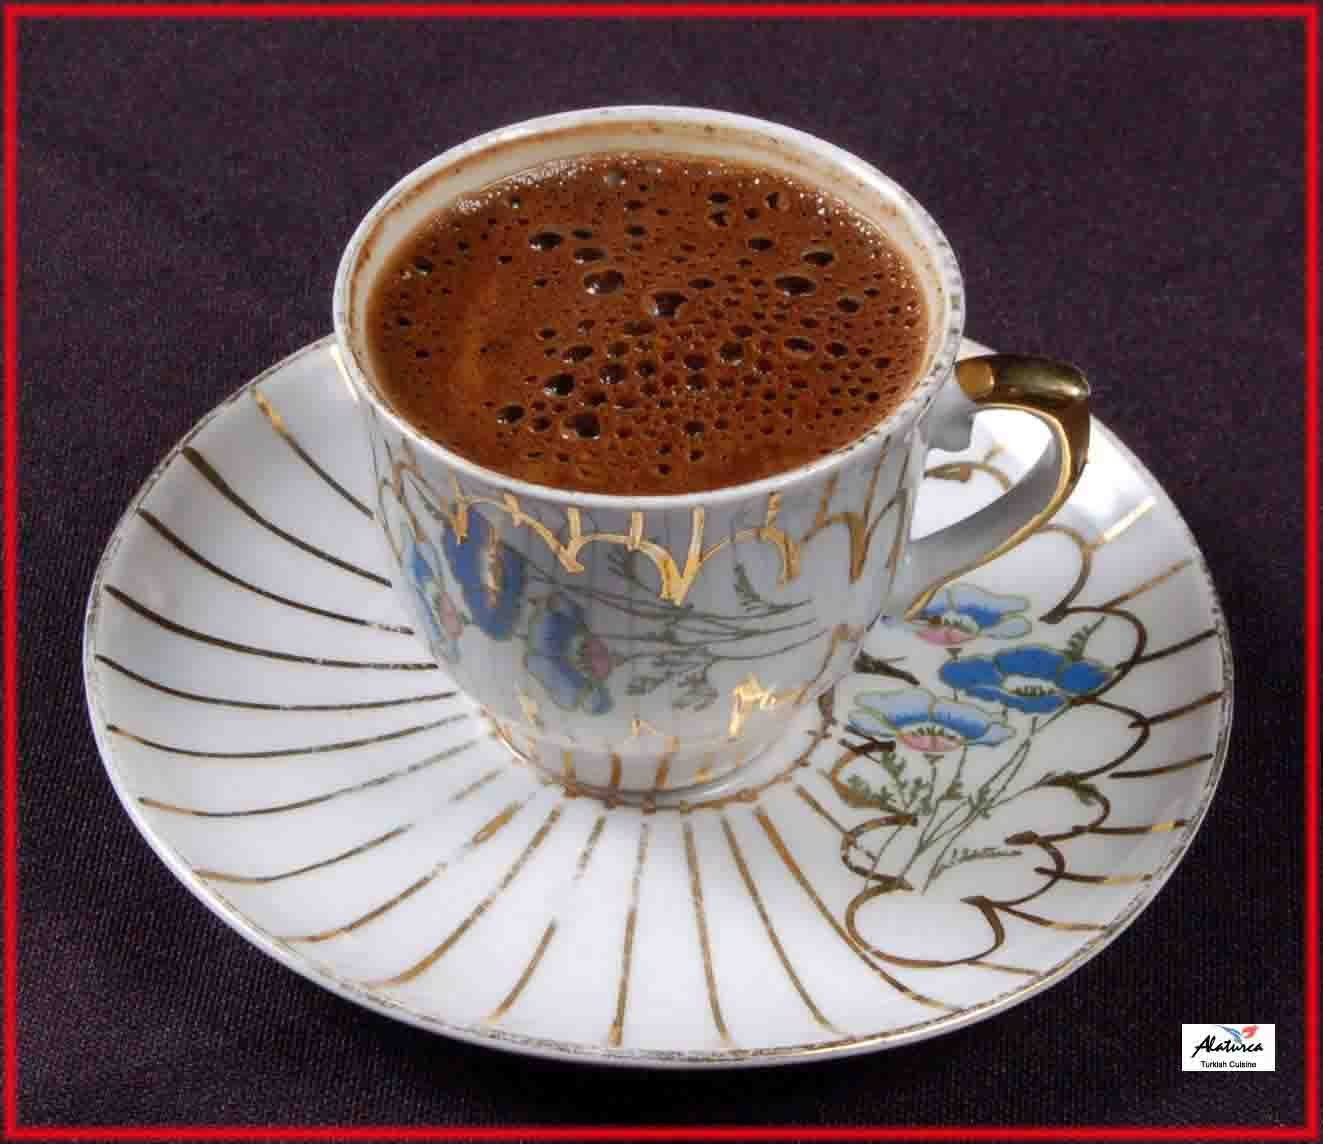 Turkish Coffee | The scent that captures us into its seeds ...